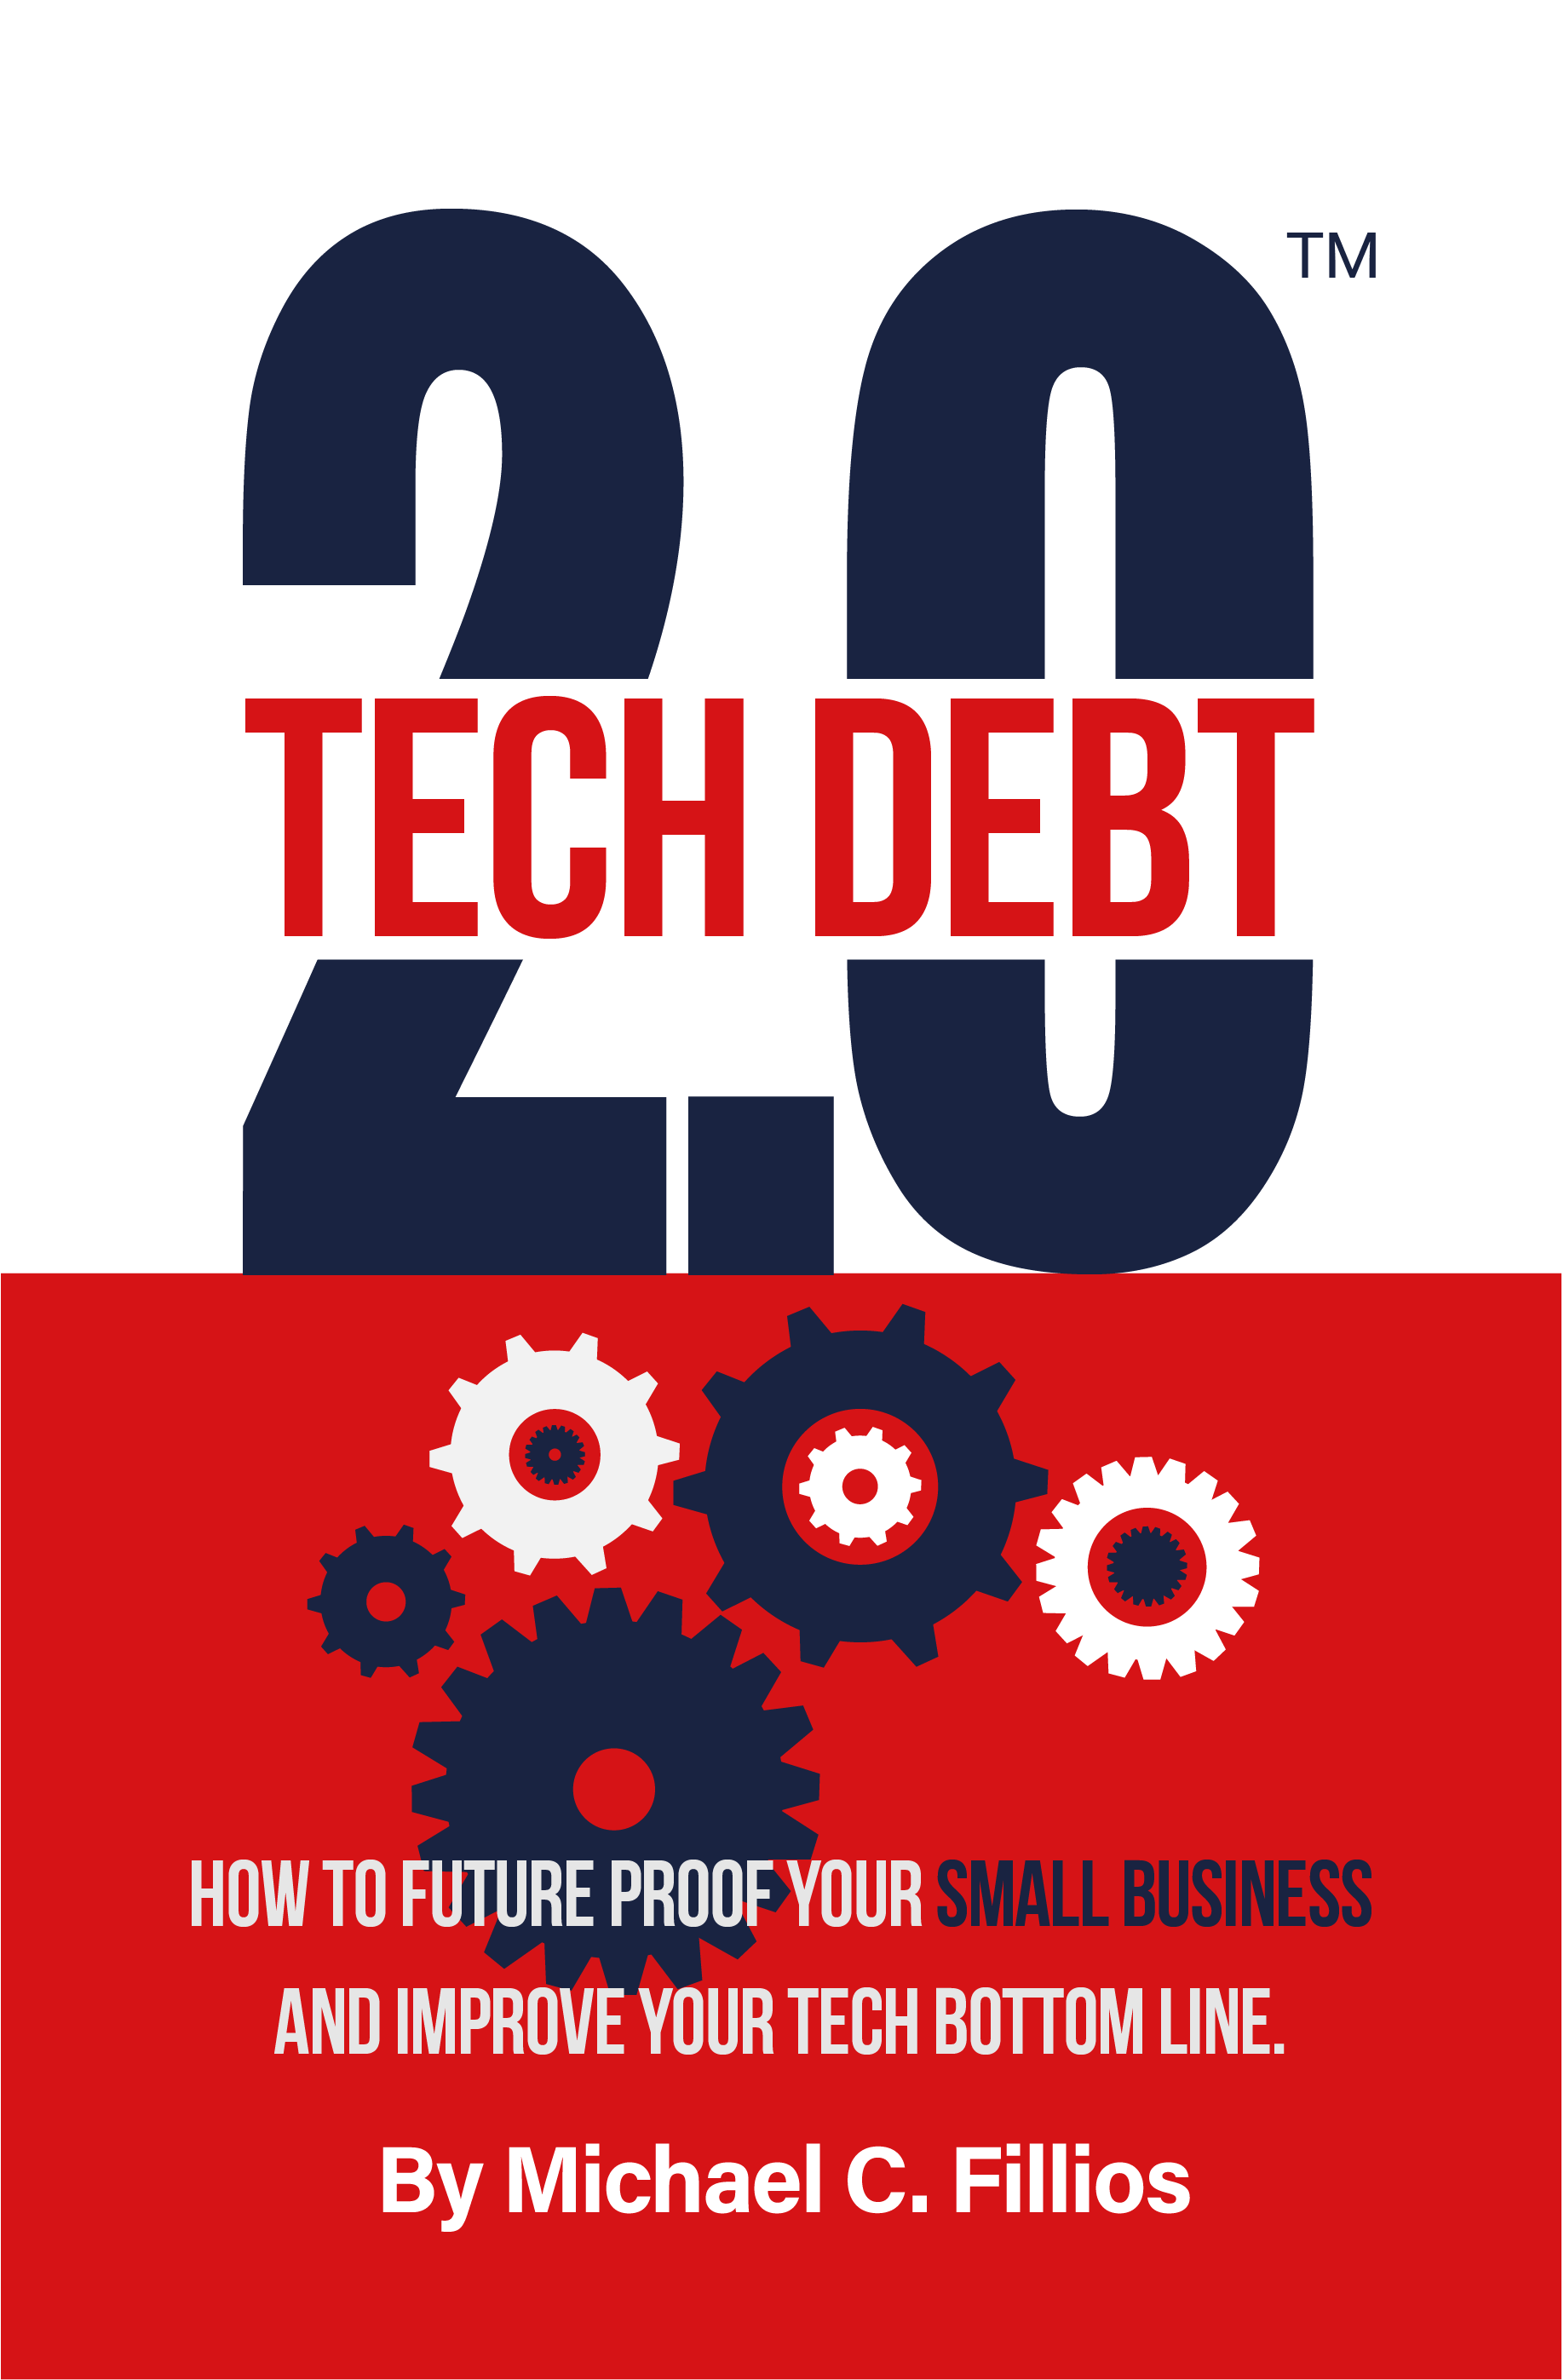 The Extended Enterprise: Outside Help for SMBs Managing Technical Debt